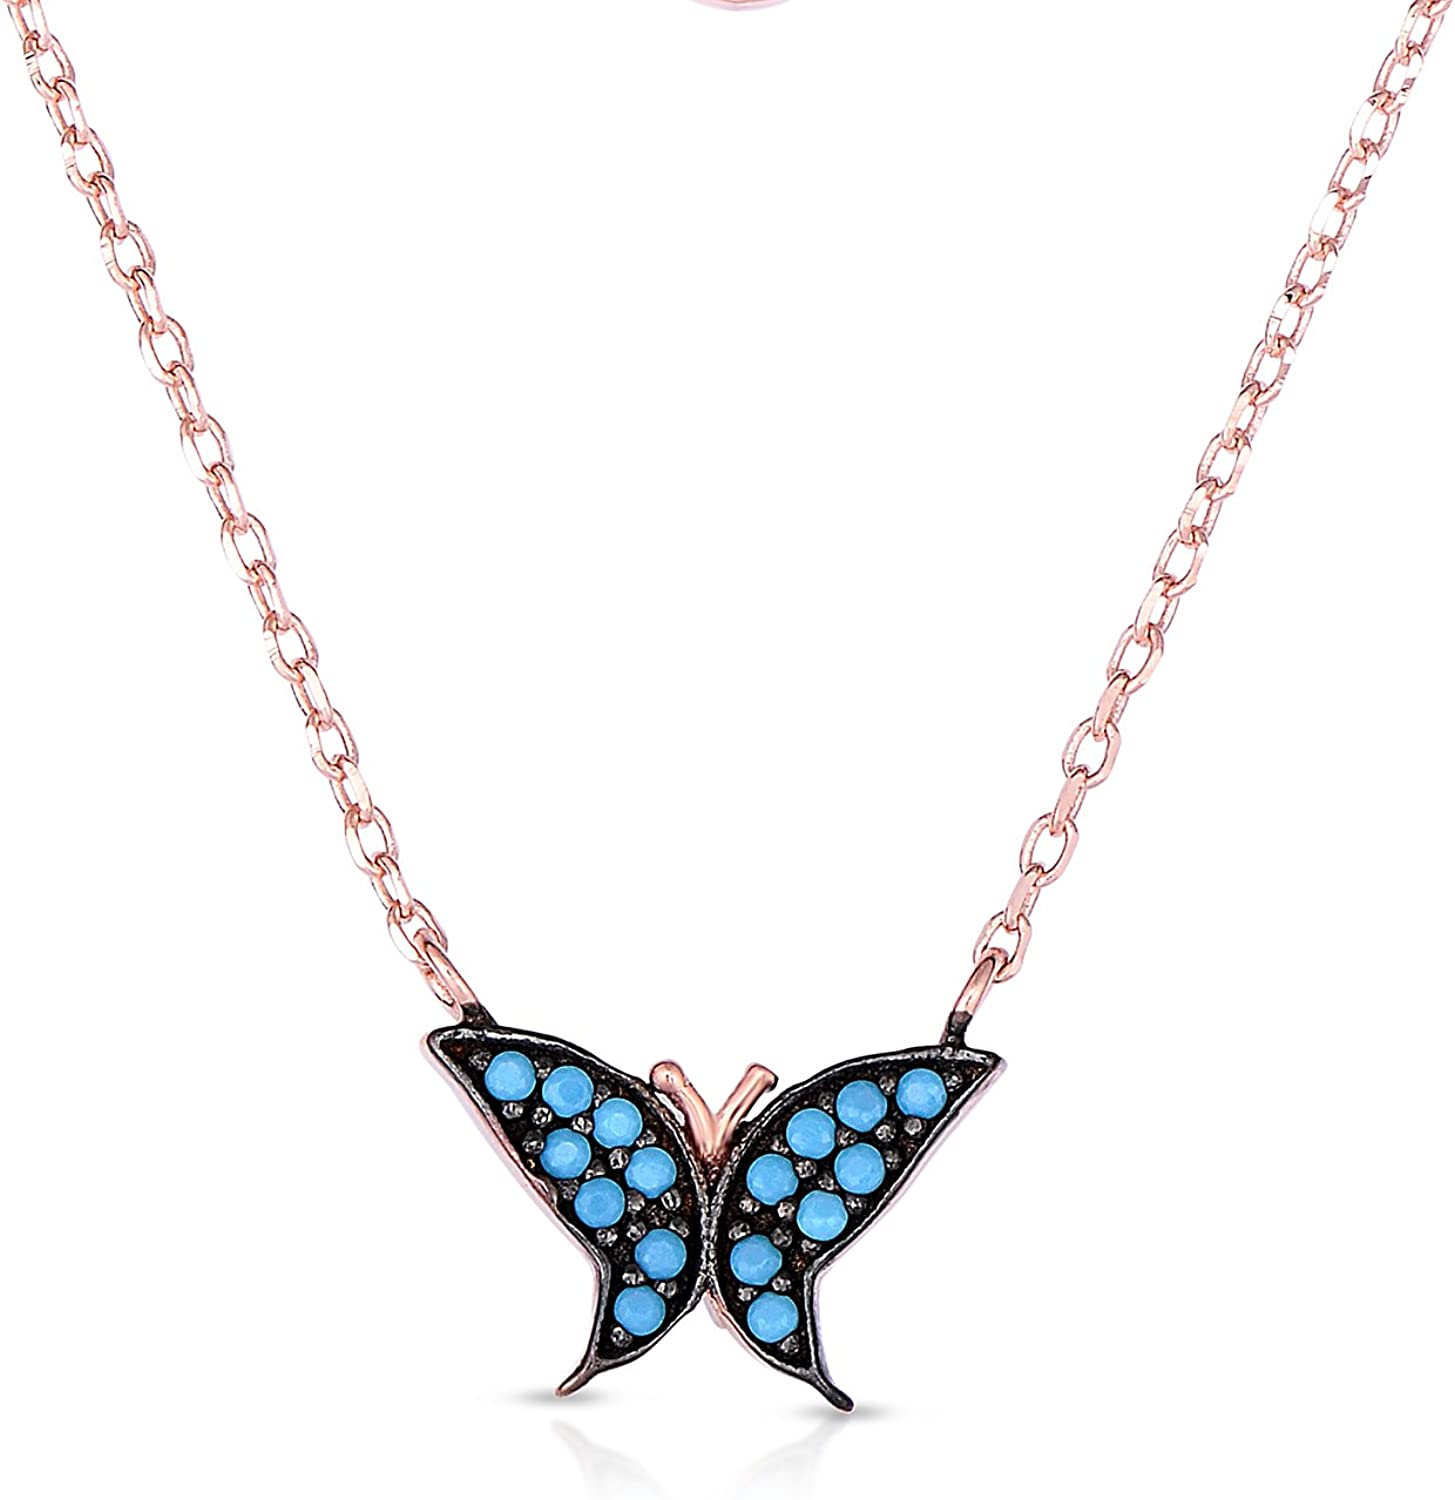 New Rhinestones Turquoise Butterfly Silver Plated Pendant Necklace 17 inch Chain